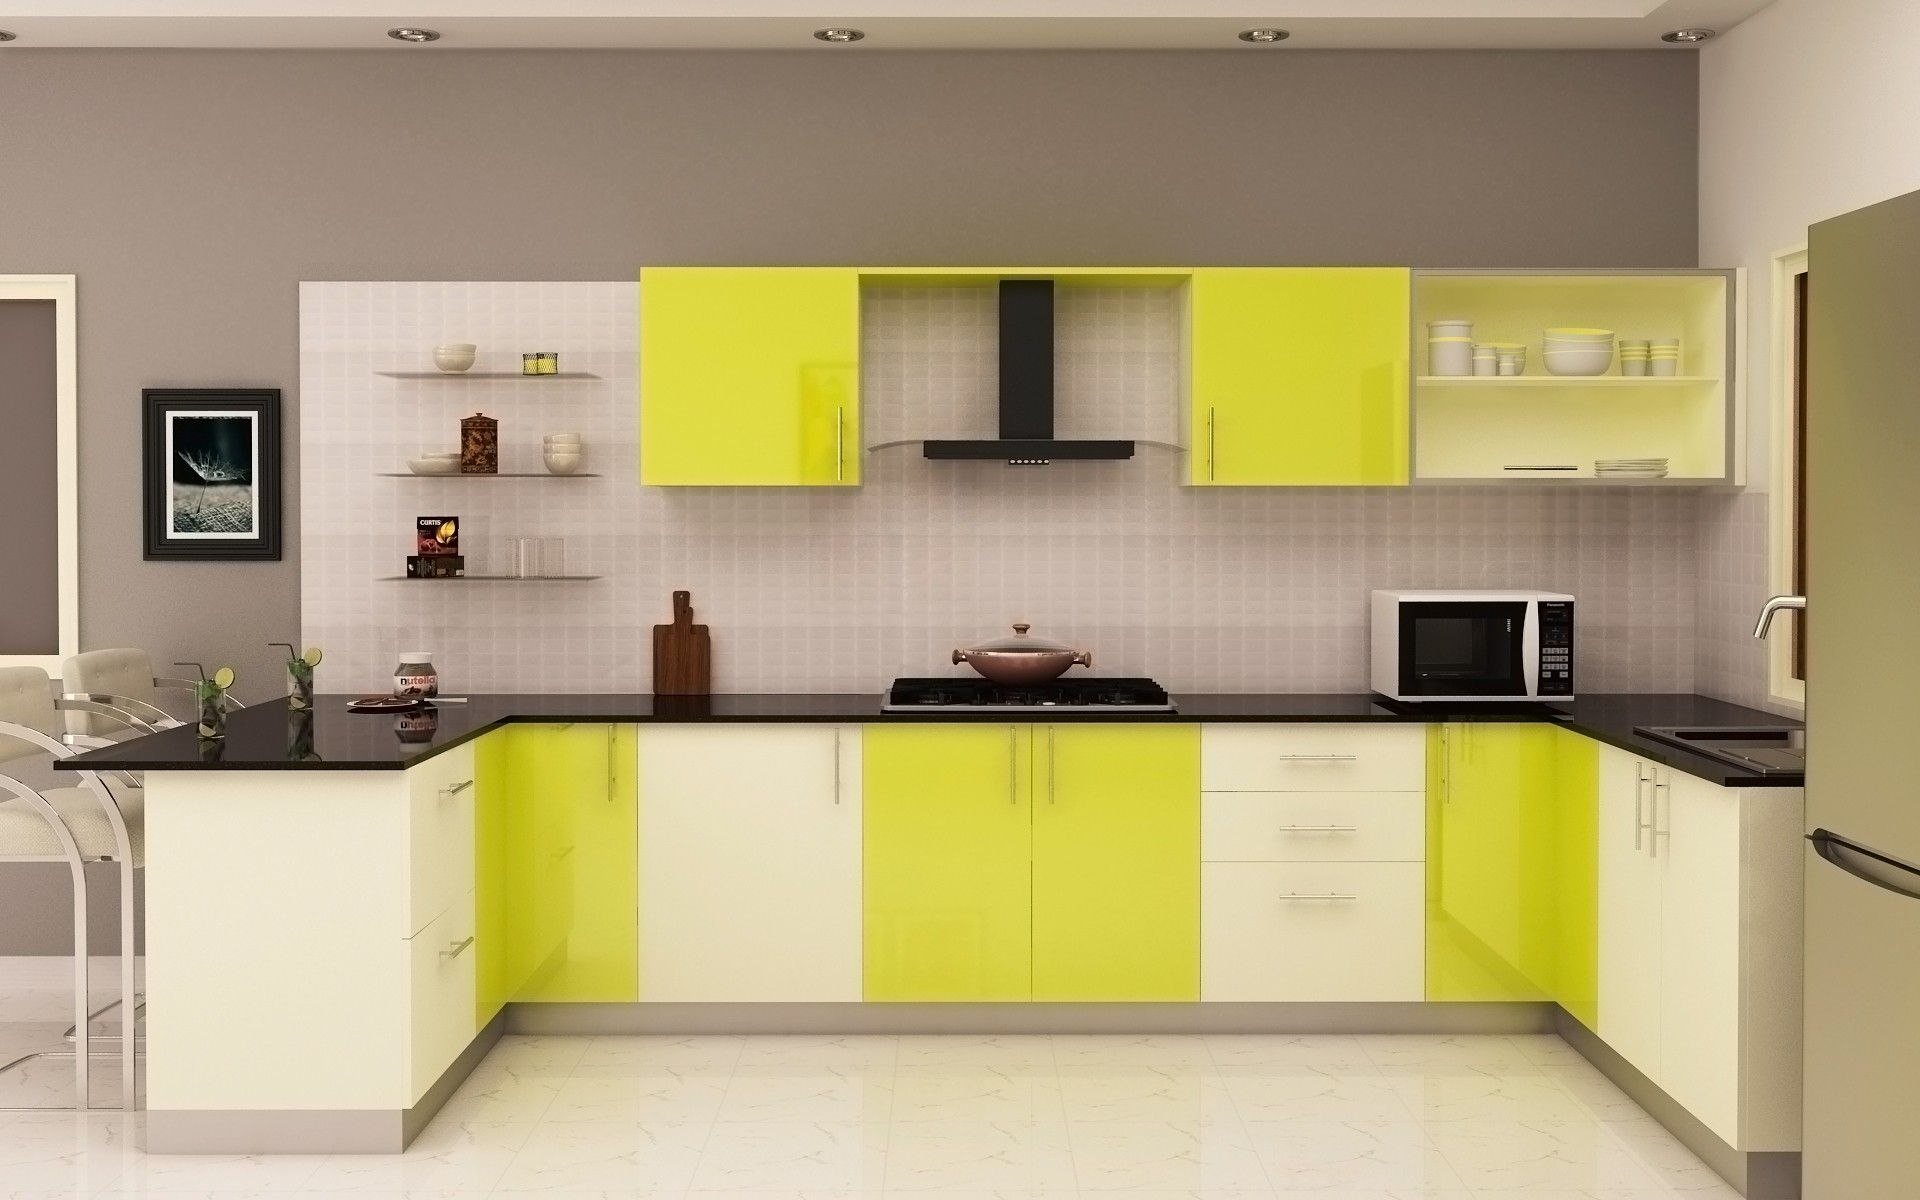 Lime Green Cabinets Tips To 39green 39 Your Kitchen Mopfrog The